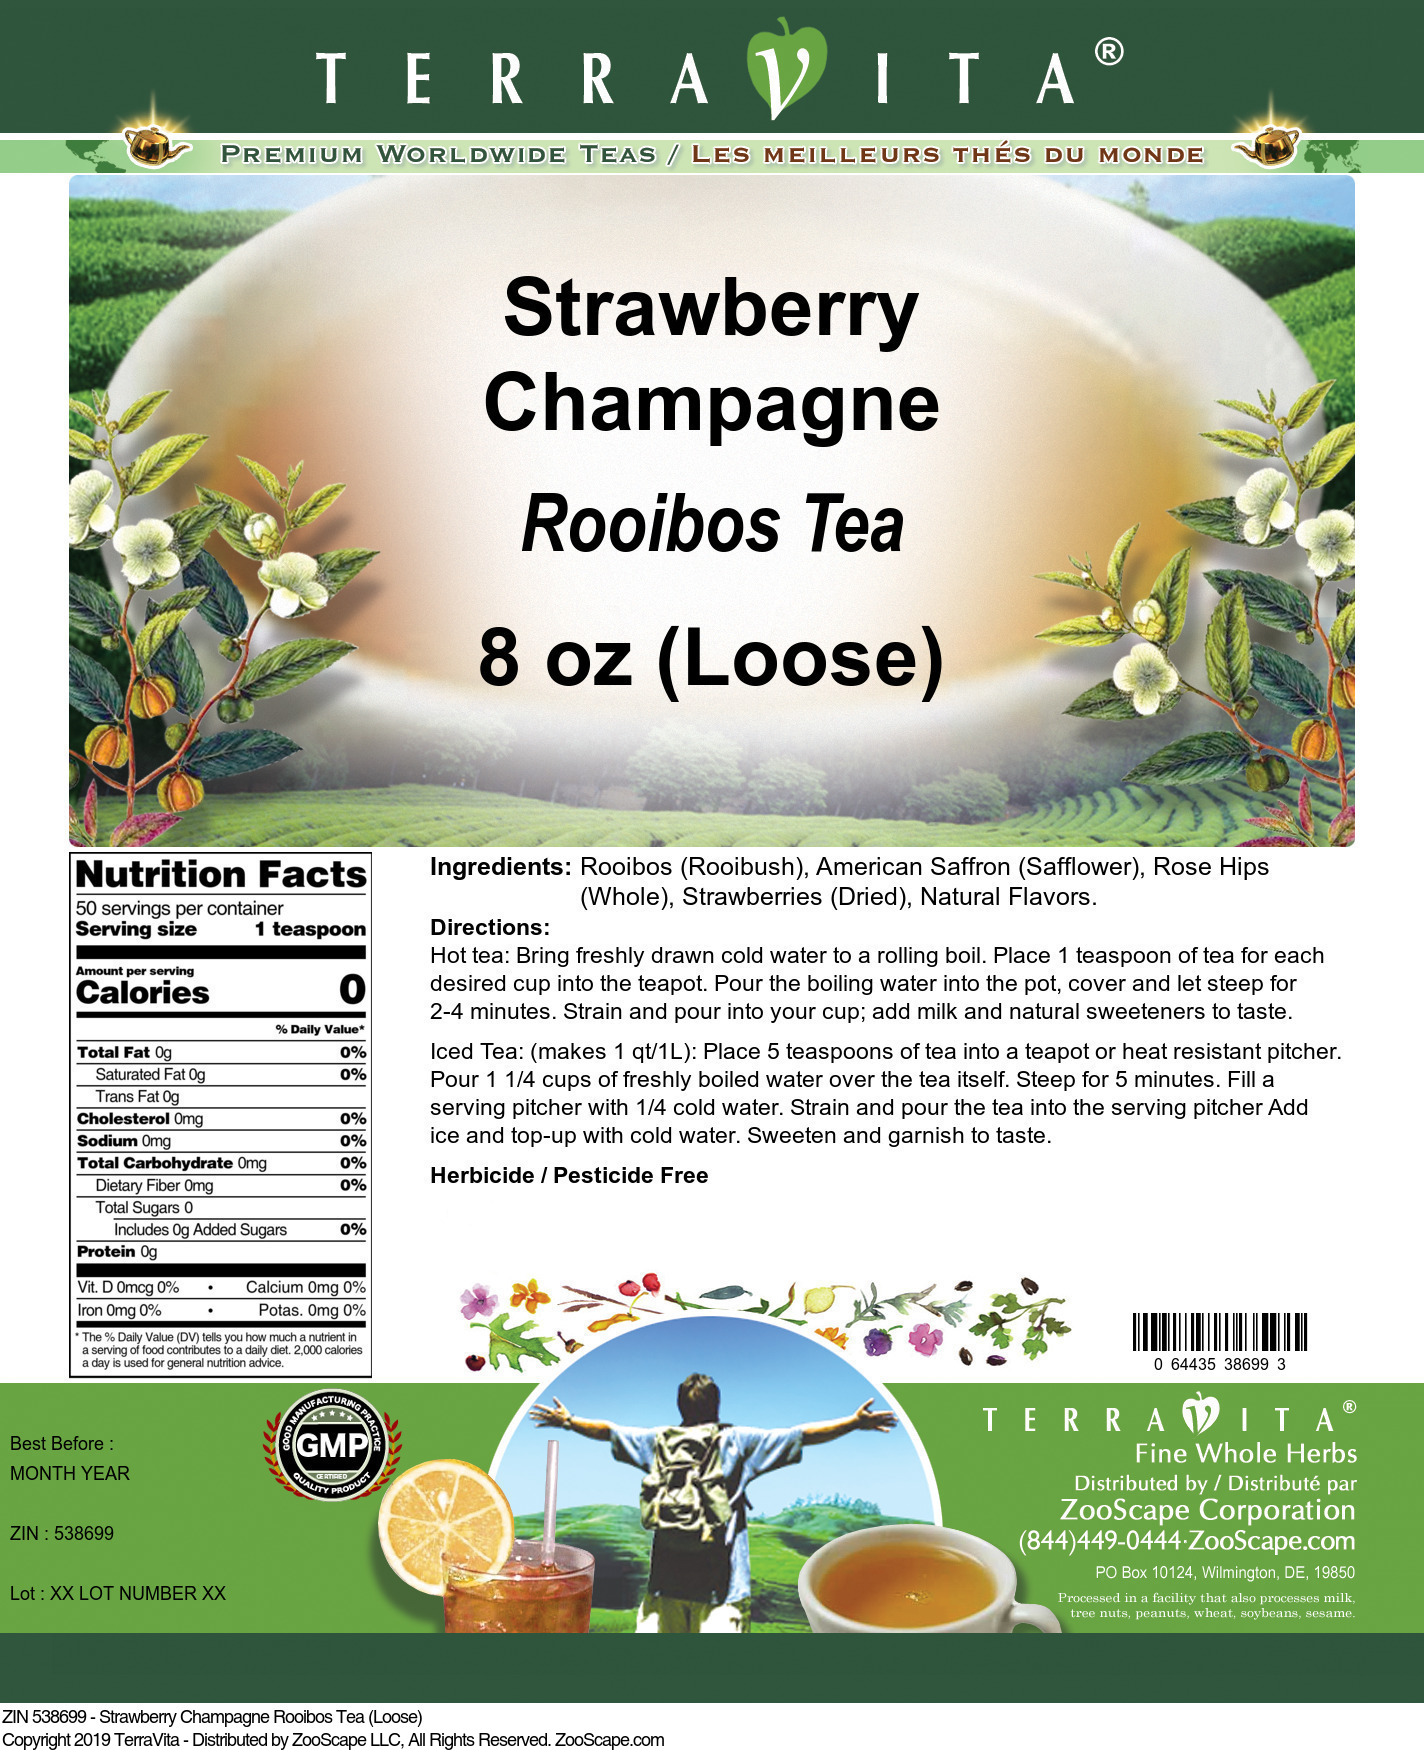 Strawberry Champagne Rooibos Tea (Loose)